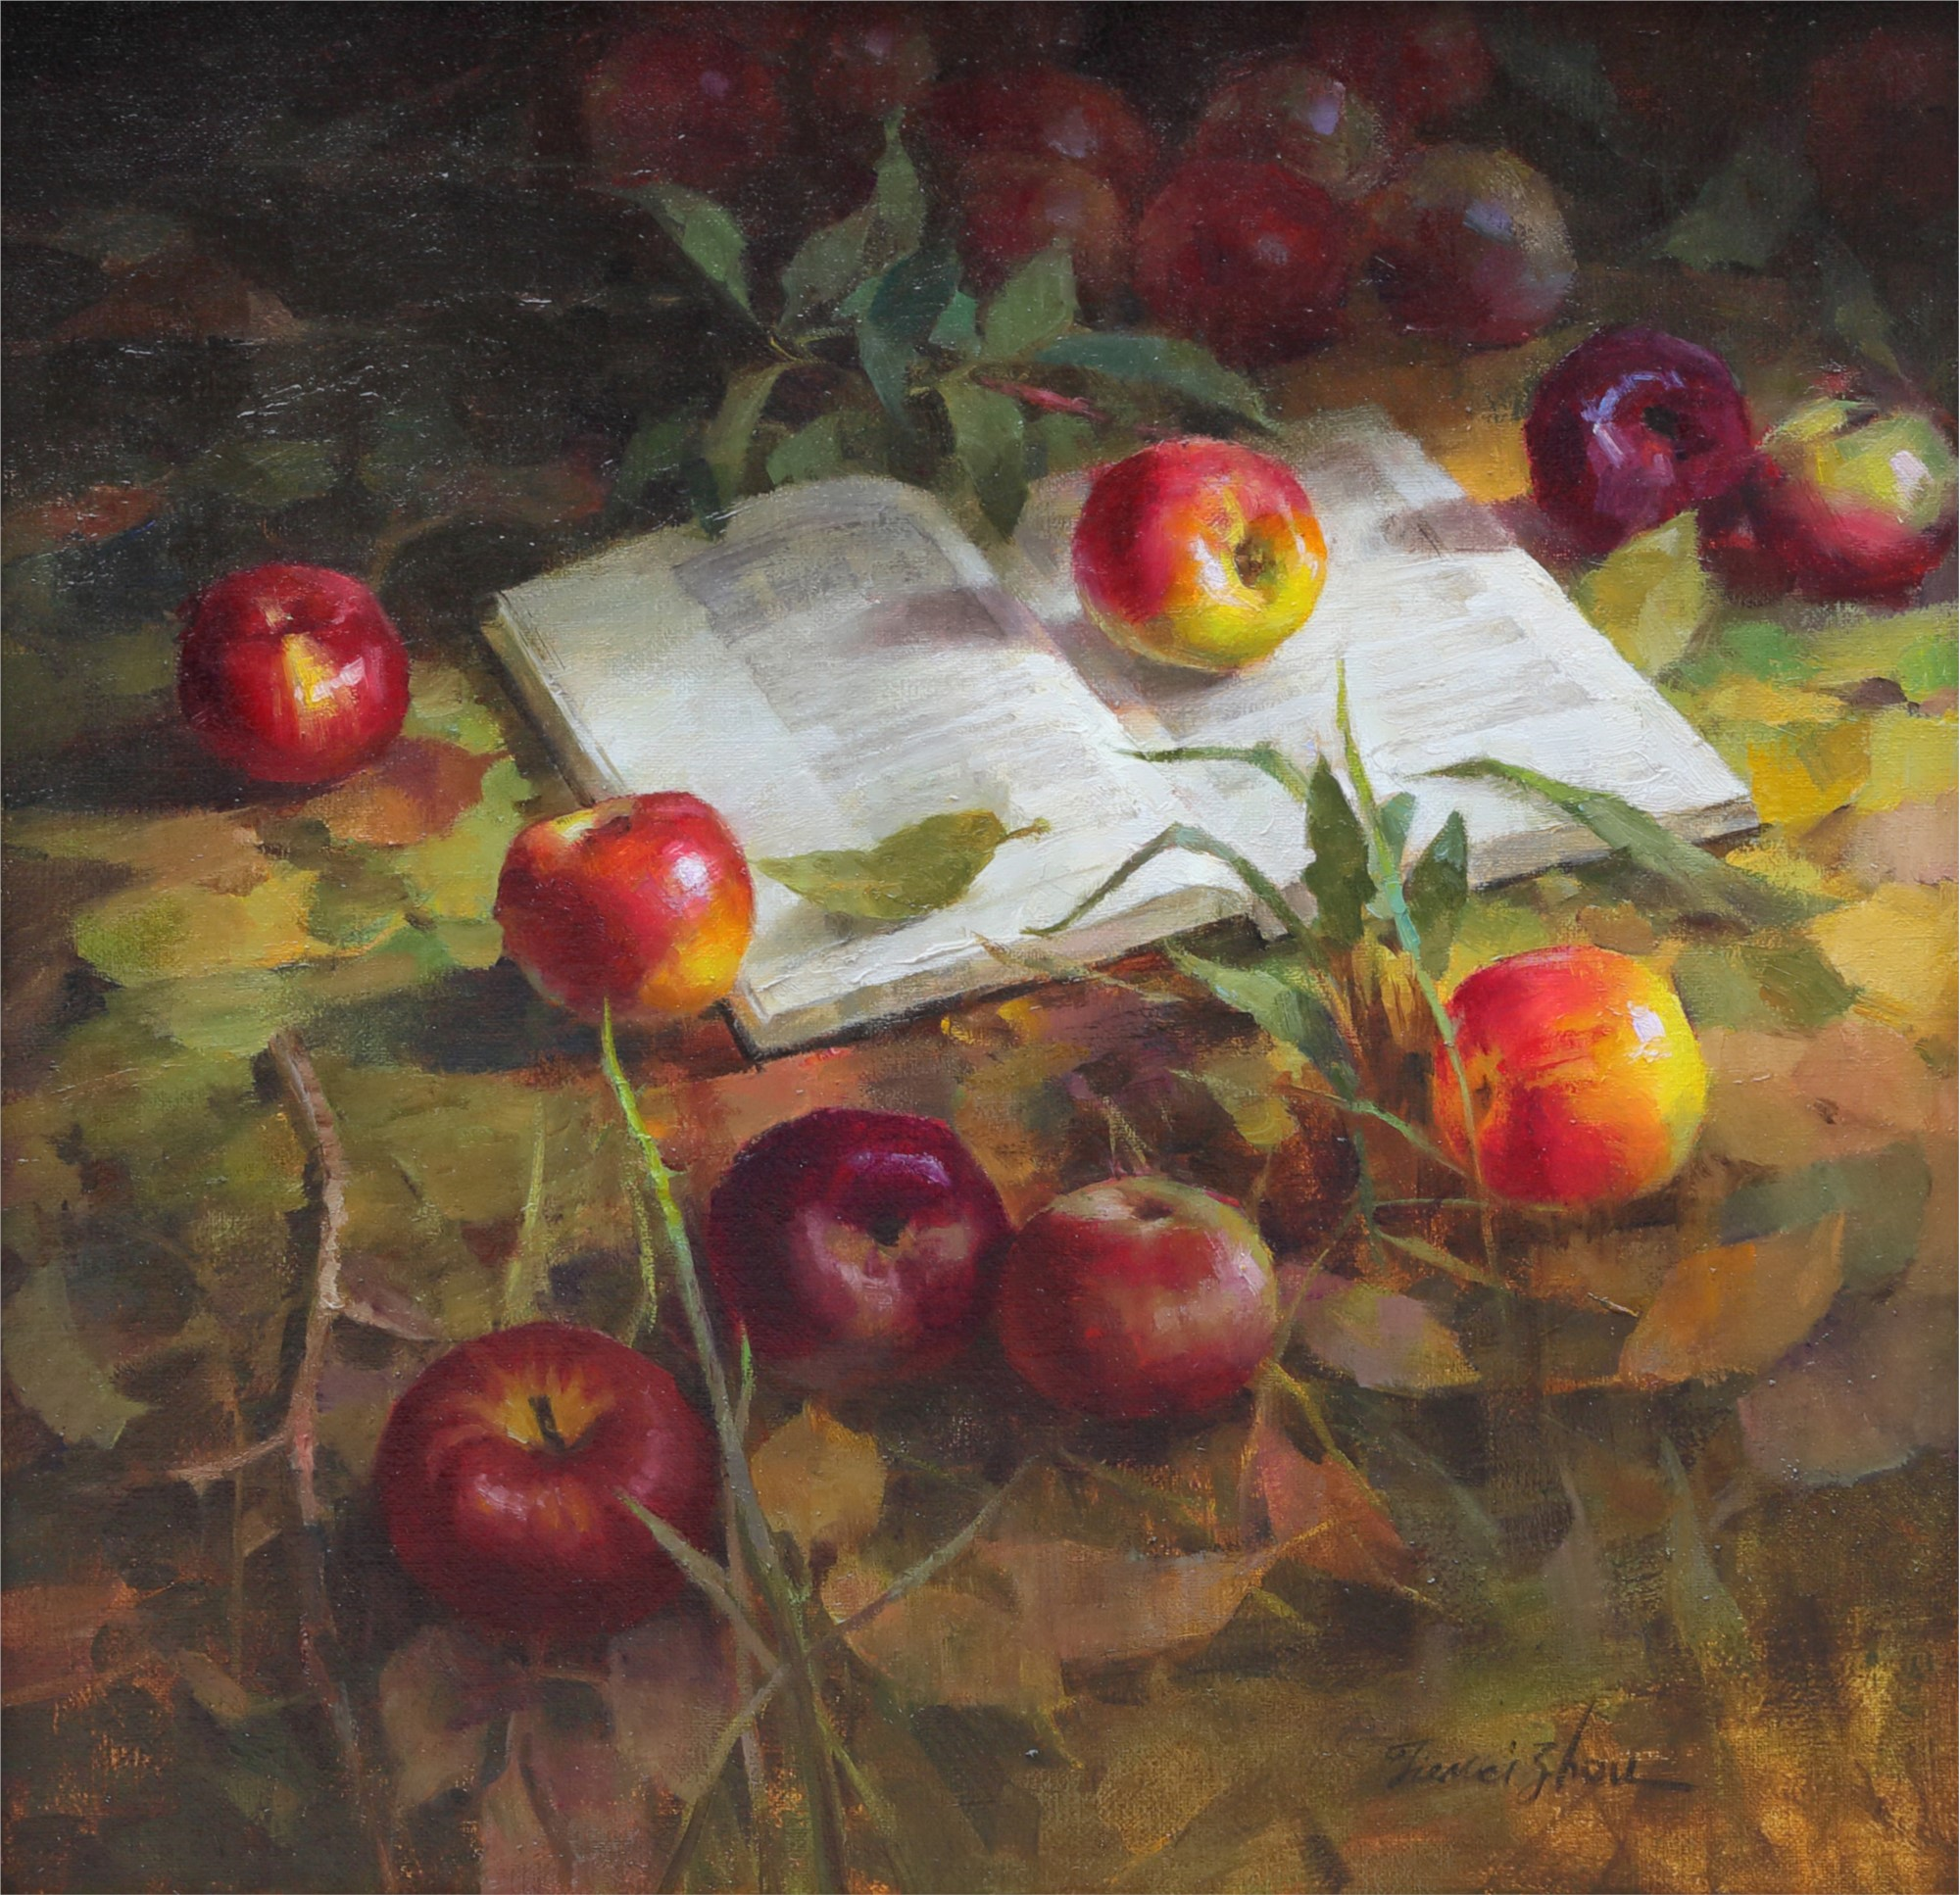 Jie Wei Zhou Painting Apples and A Book Oil on Linen